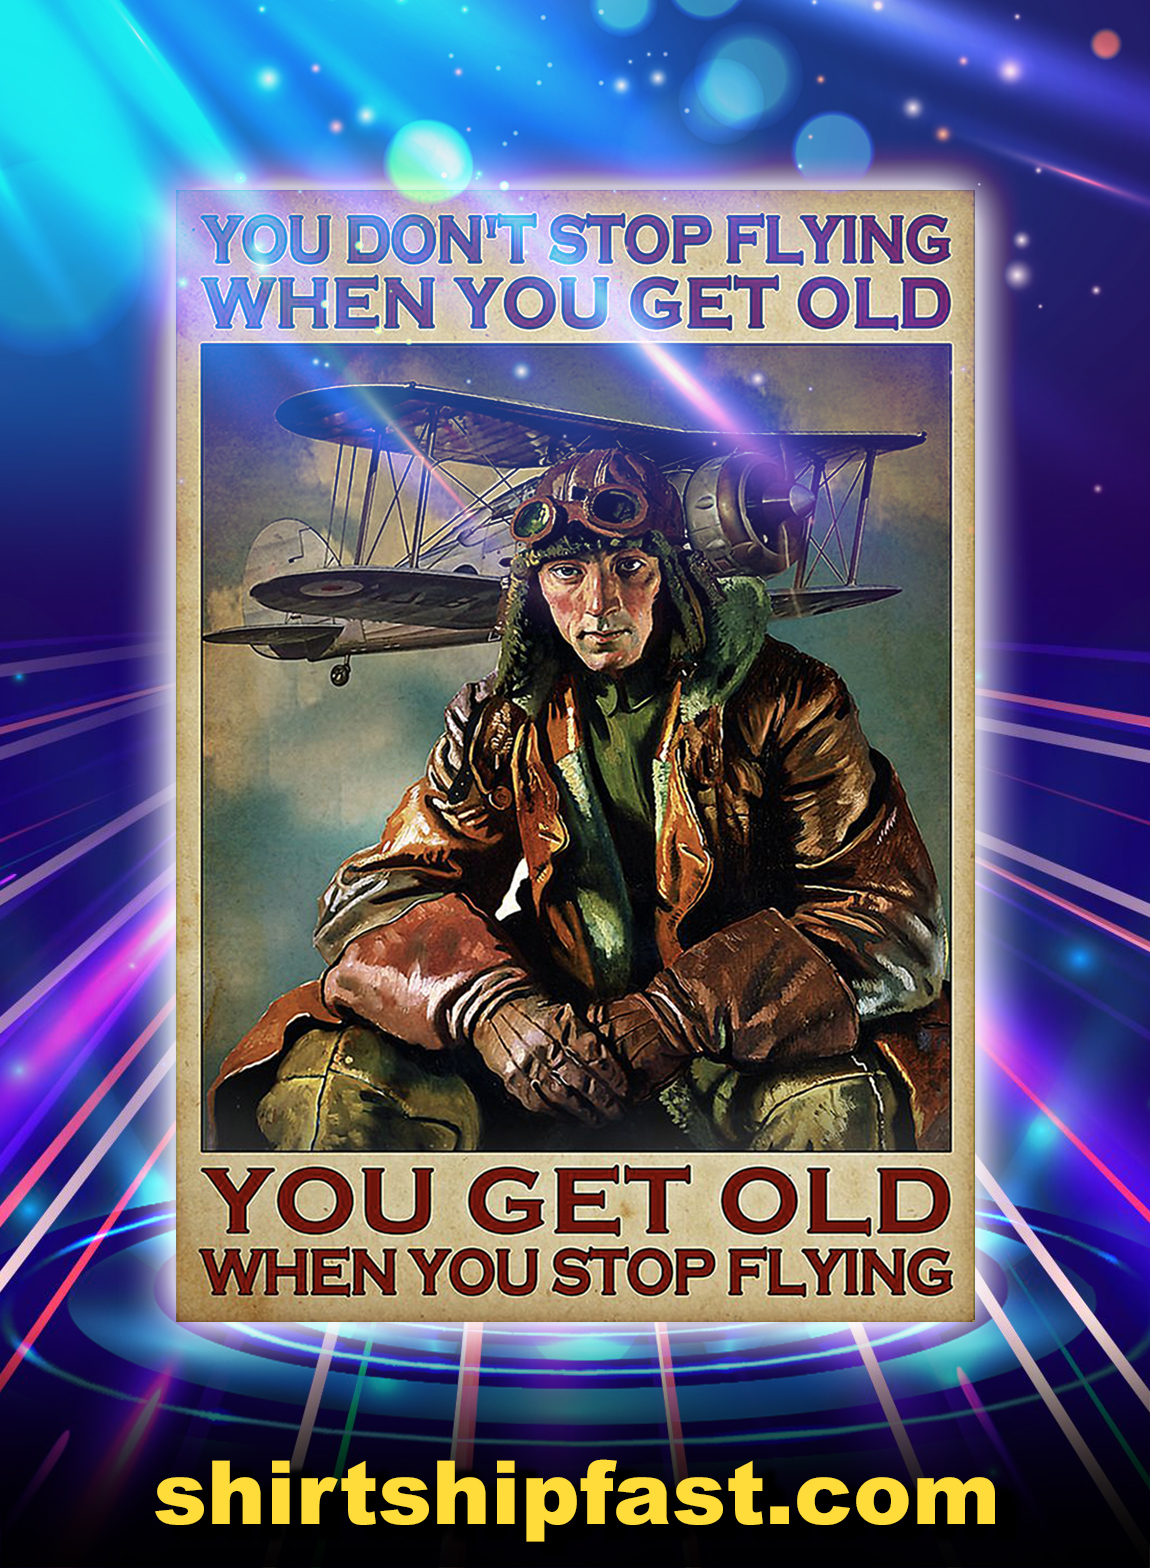 PILOT you don't stop flying when you get old poster - A3